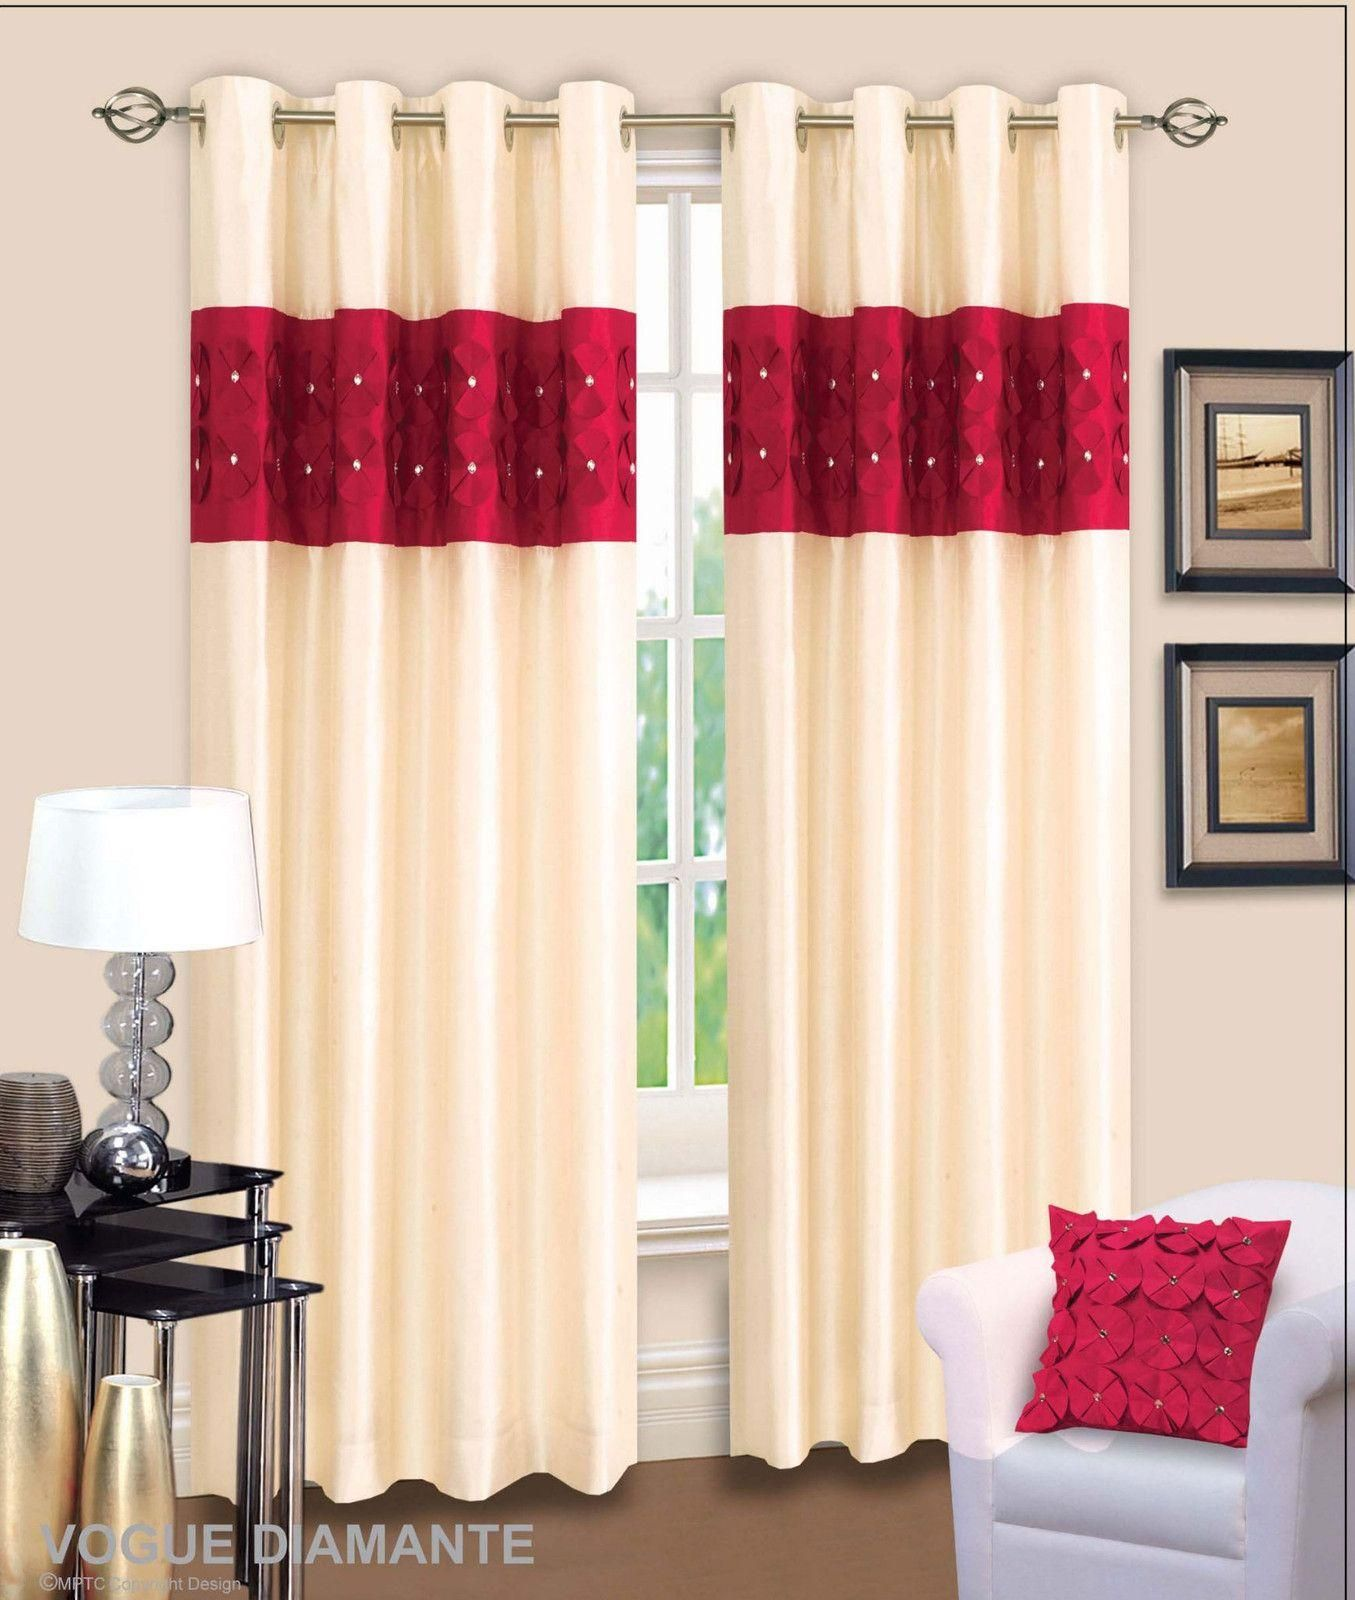 Awesome Black And Red Curtains For Living Room Curtains Living Room Red Curtains Living Room Red Curtains